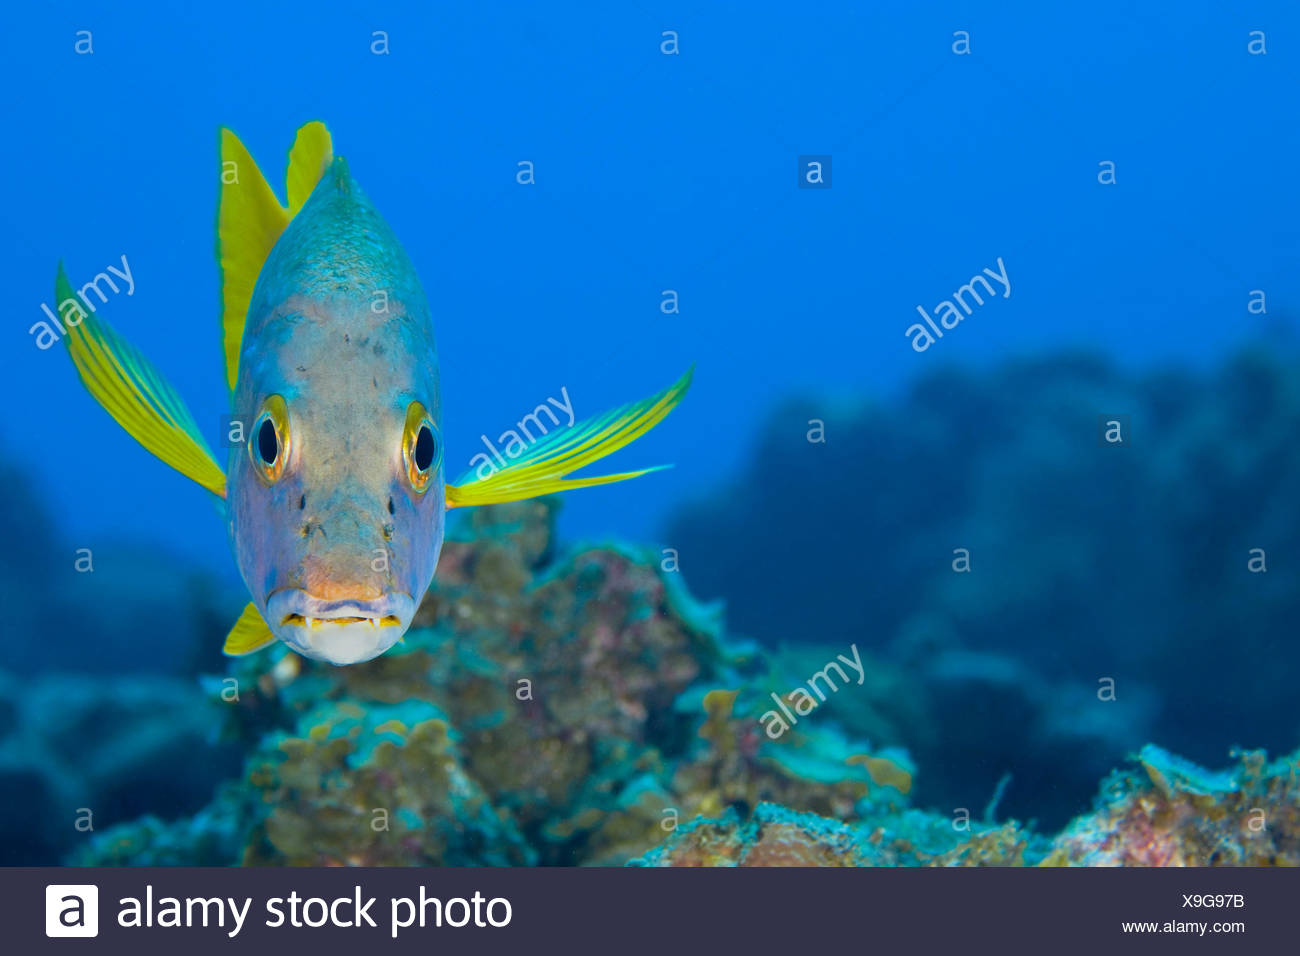 Schoolmaster snapper (Lutjanus apodus) above a coral reef, Georgetown, Grand Cayman, Cayman Islands, British West Indies, Caribbean Sea. - Stock Image